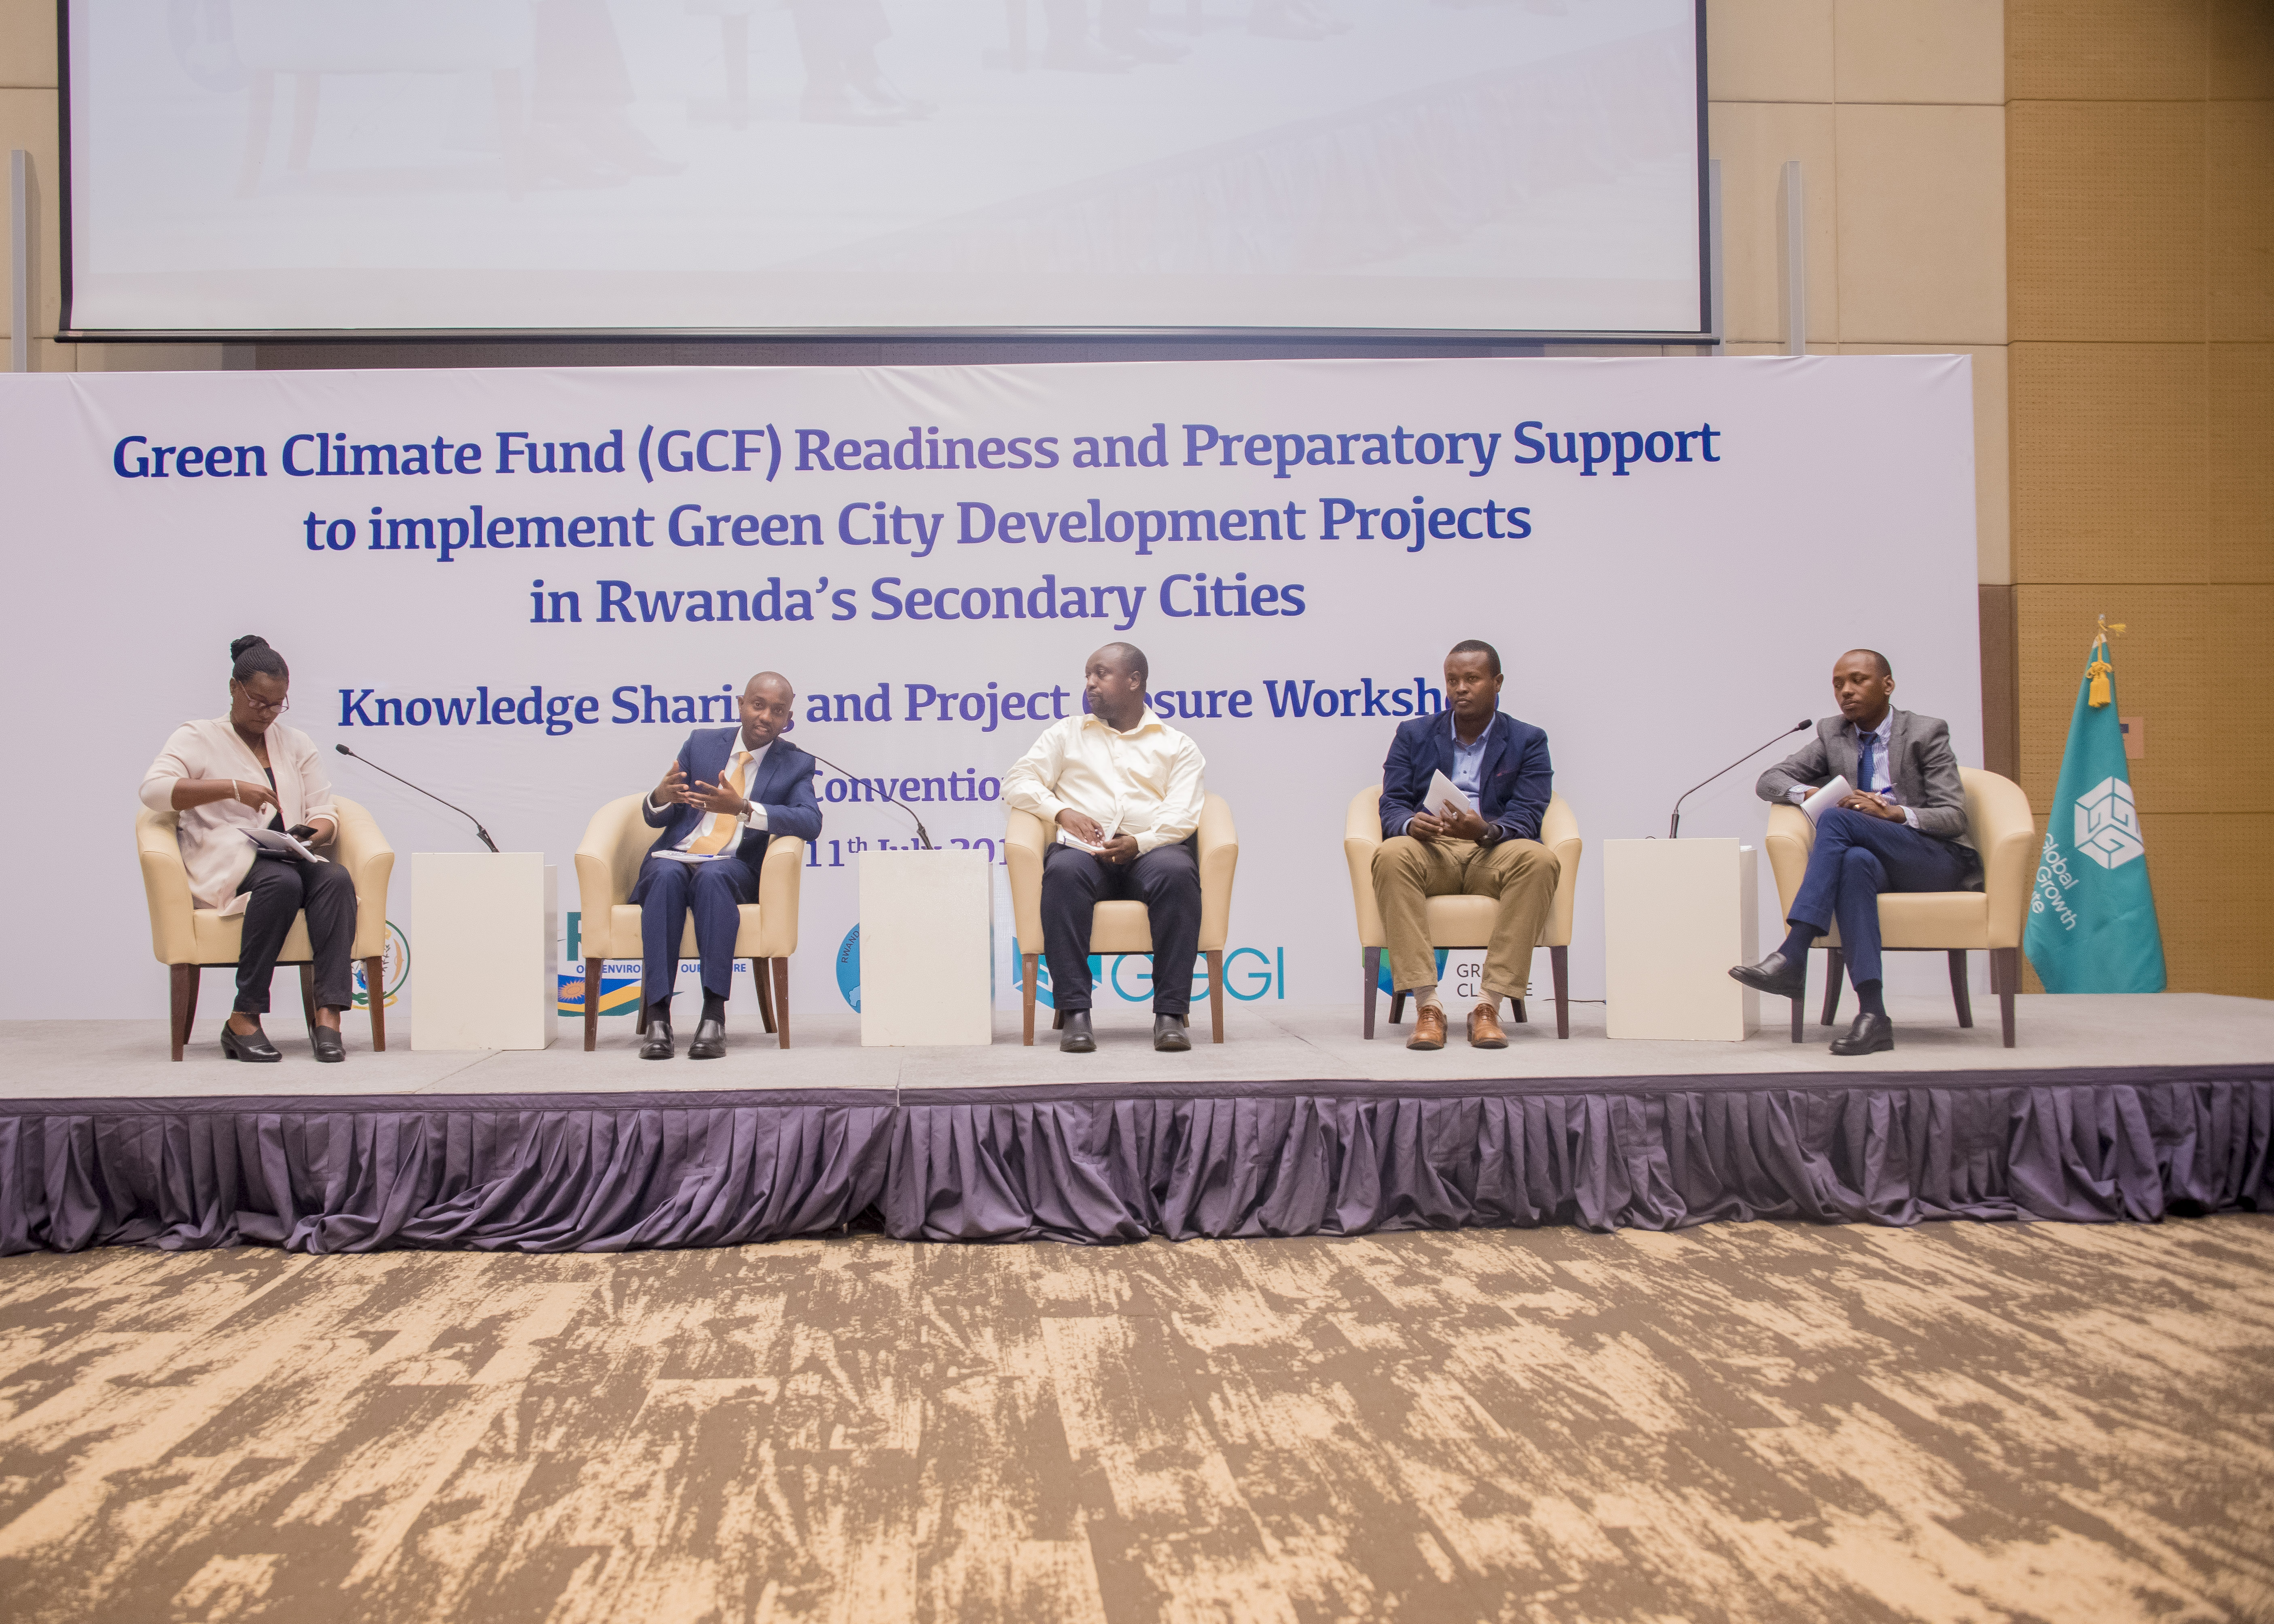 Green Climate Fund (GCF) Readiness and preparatory support